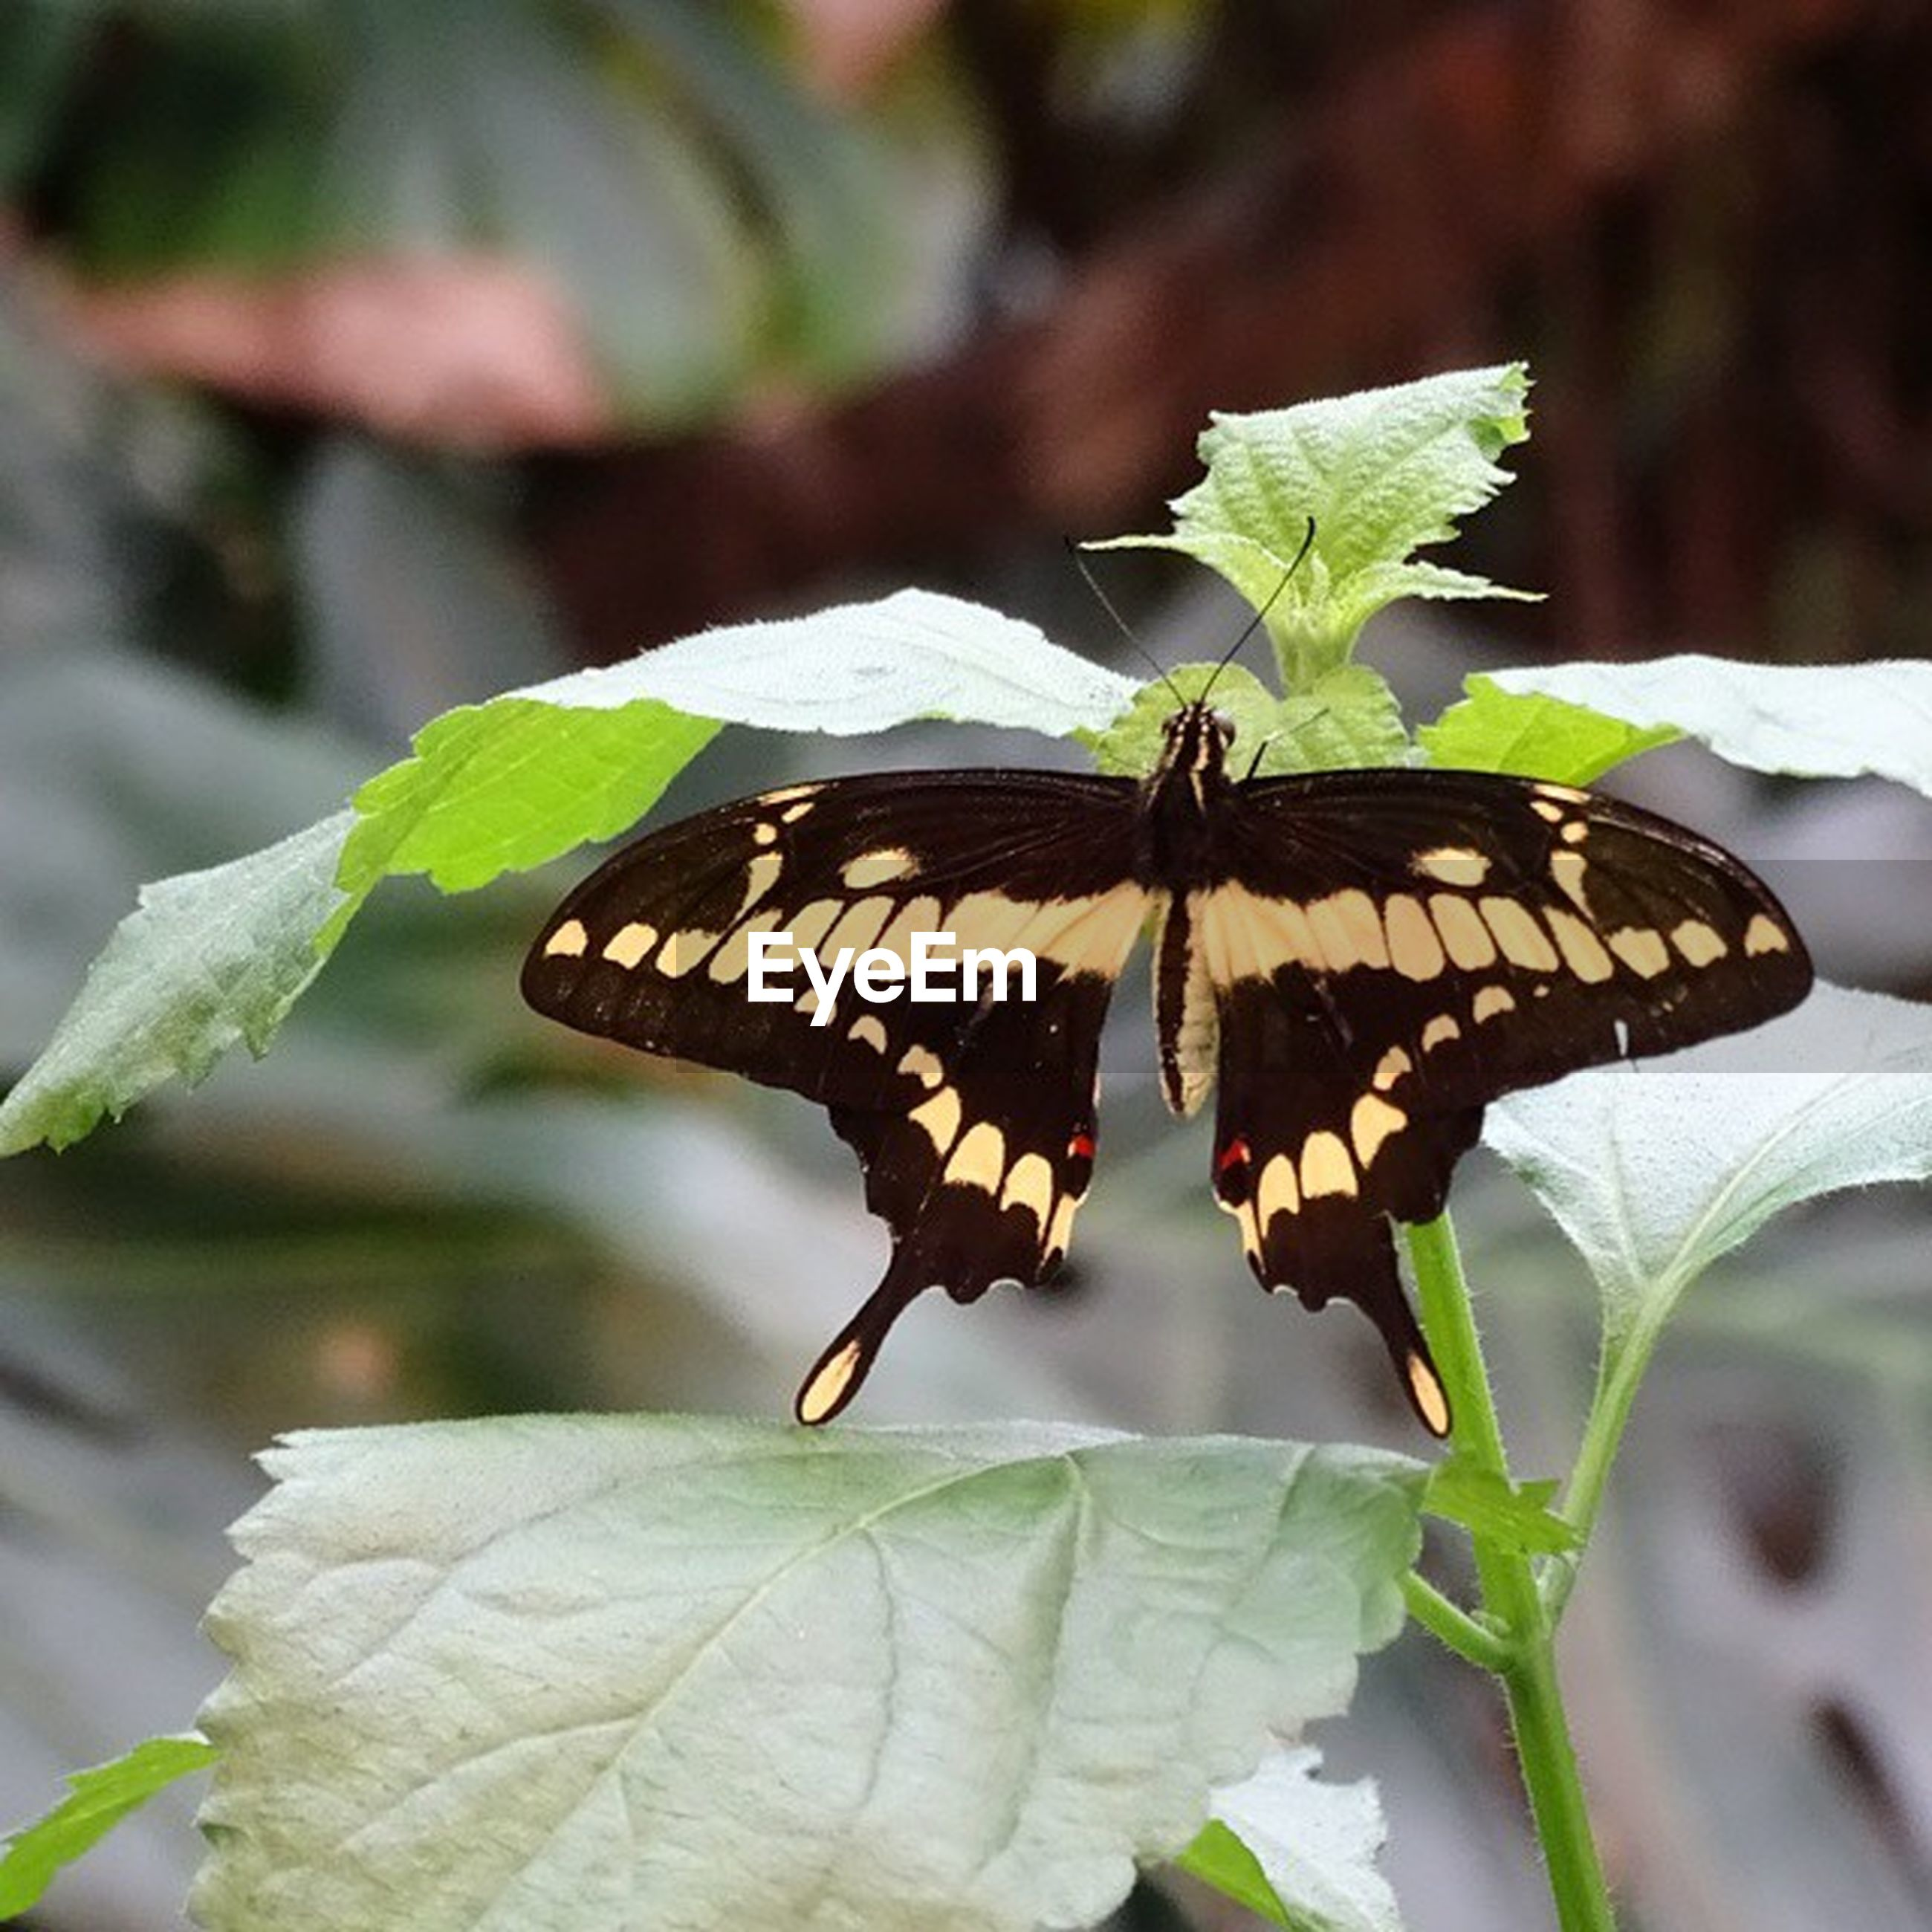 insect, one animal, animals in the wild, butterfly - insect, animal themes, wildlife, butterfly, focus on foreground, leaf, animal wing, close-up, animal antenna, animal markings, plant, beauty in nature, natural pattern, nature, fragility, perching, spread wings